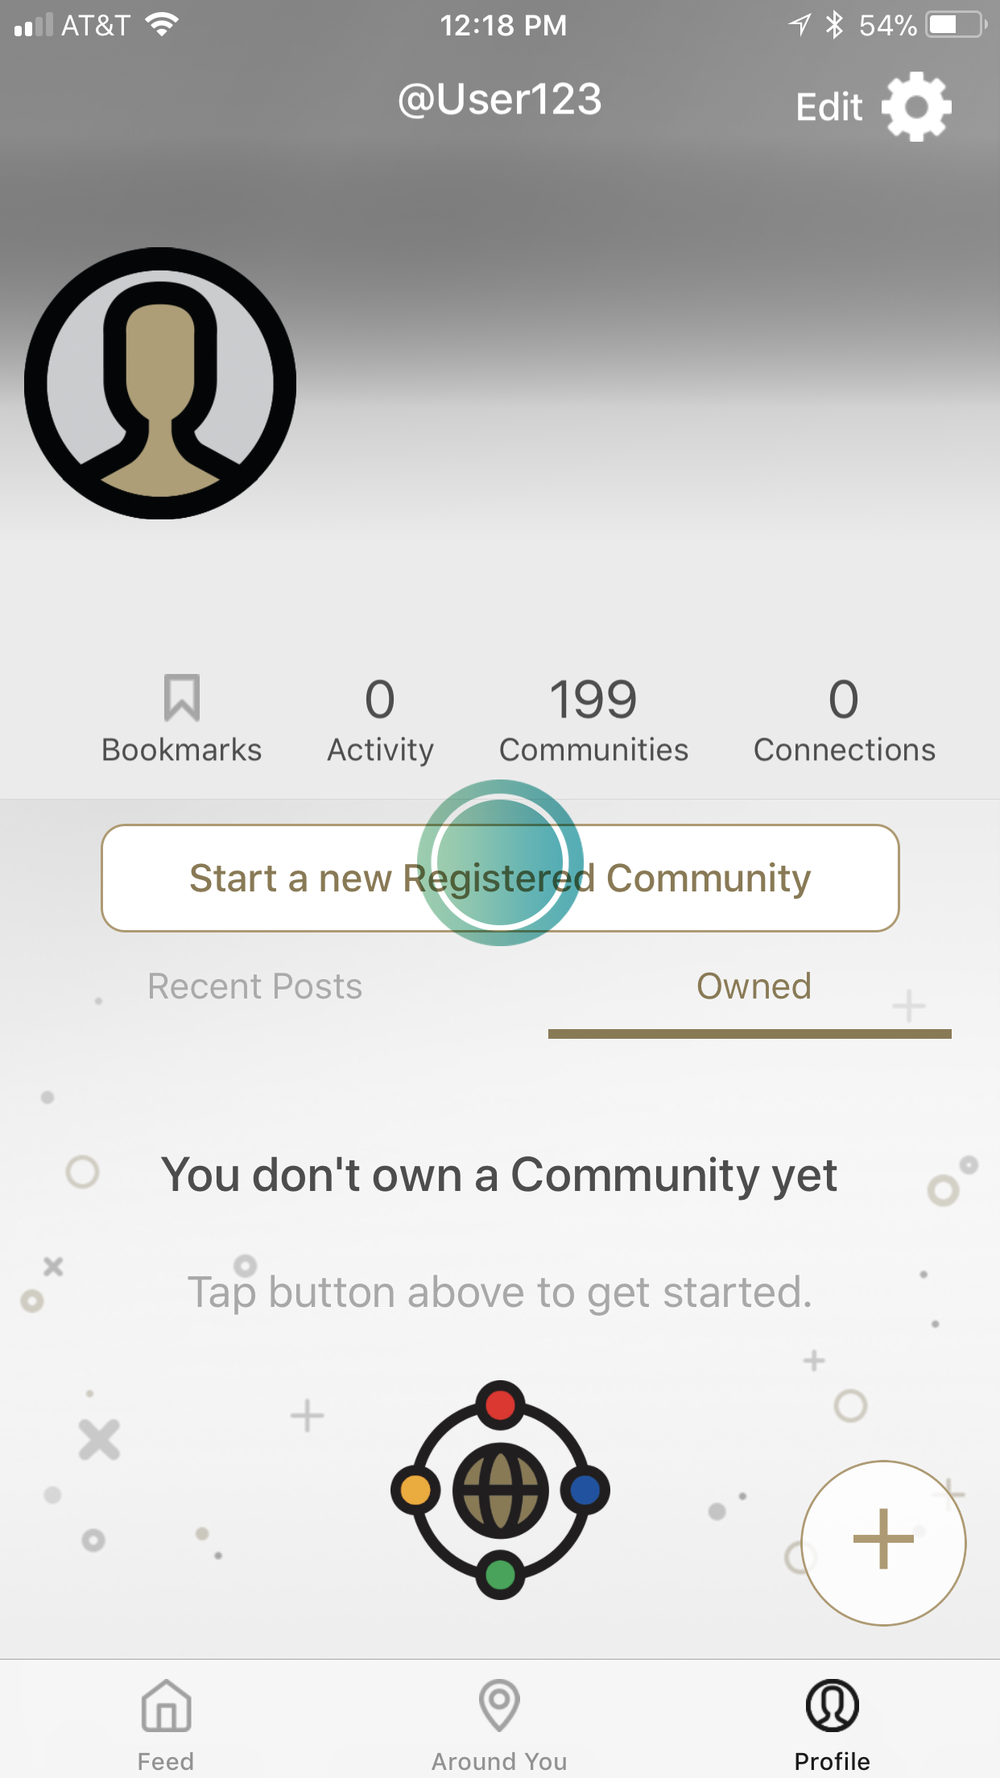 1. Go to your Profile - Tap